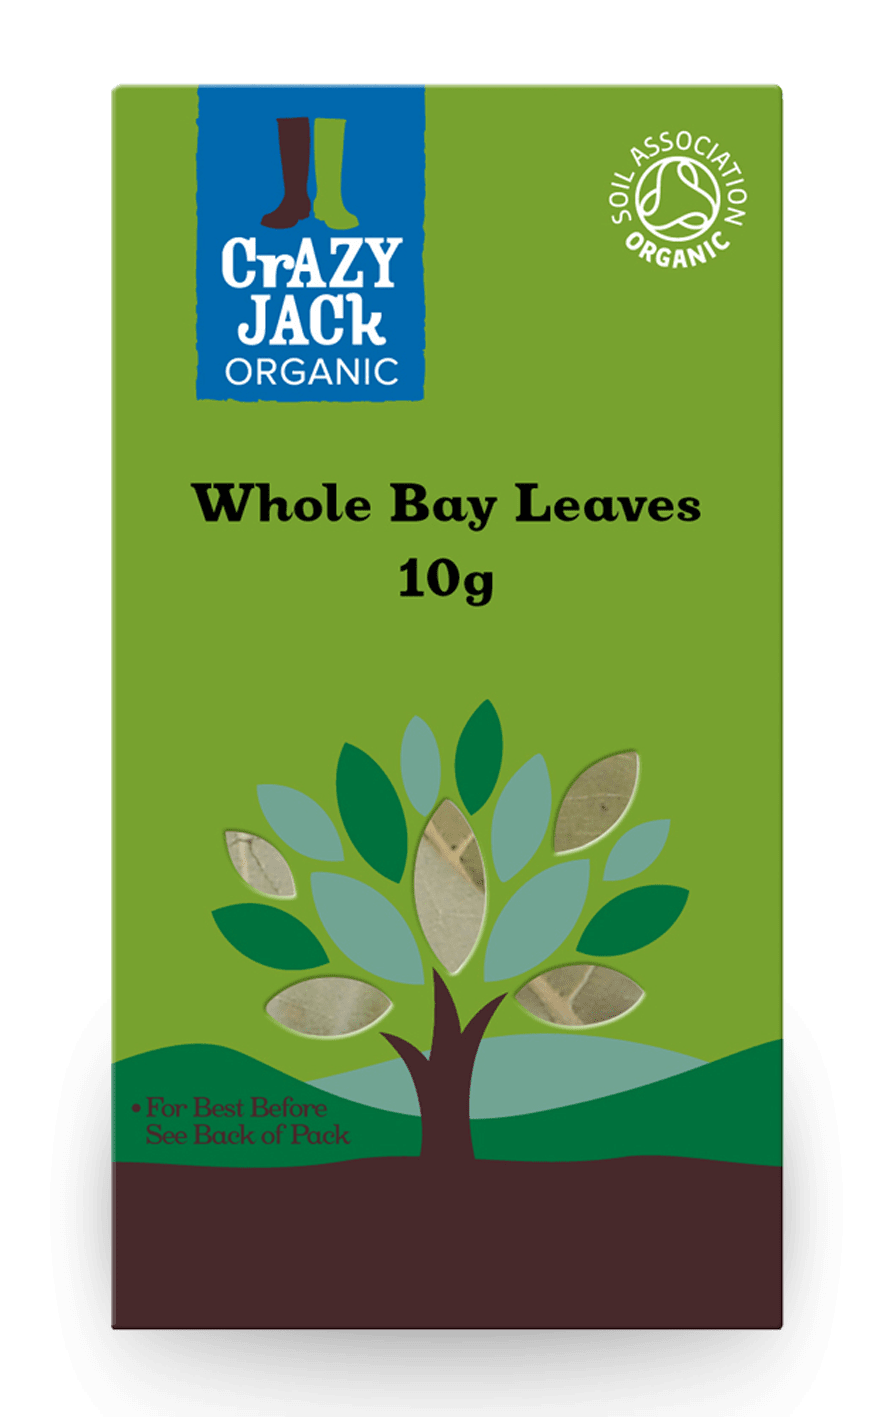 Packaging for 10g of whole bay leaves